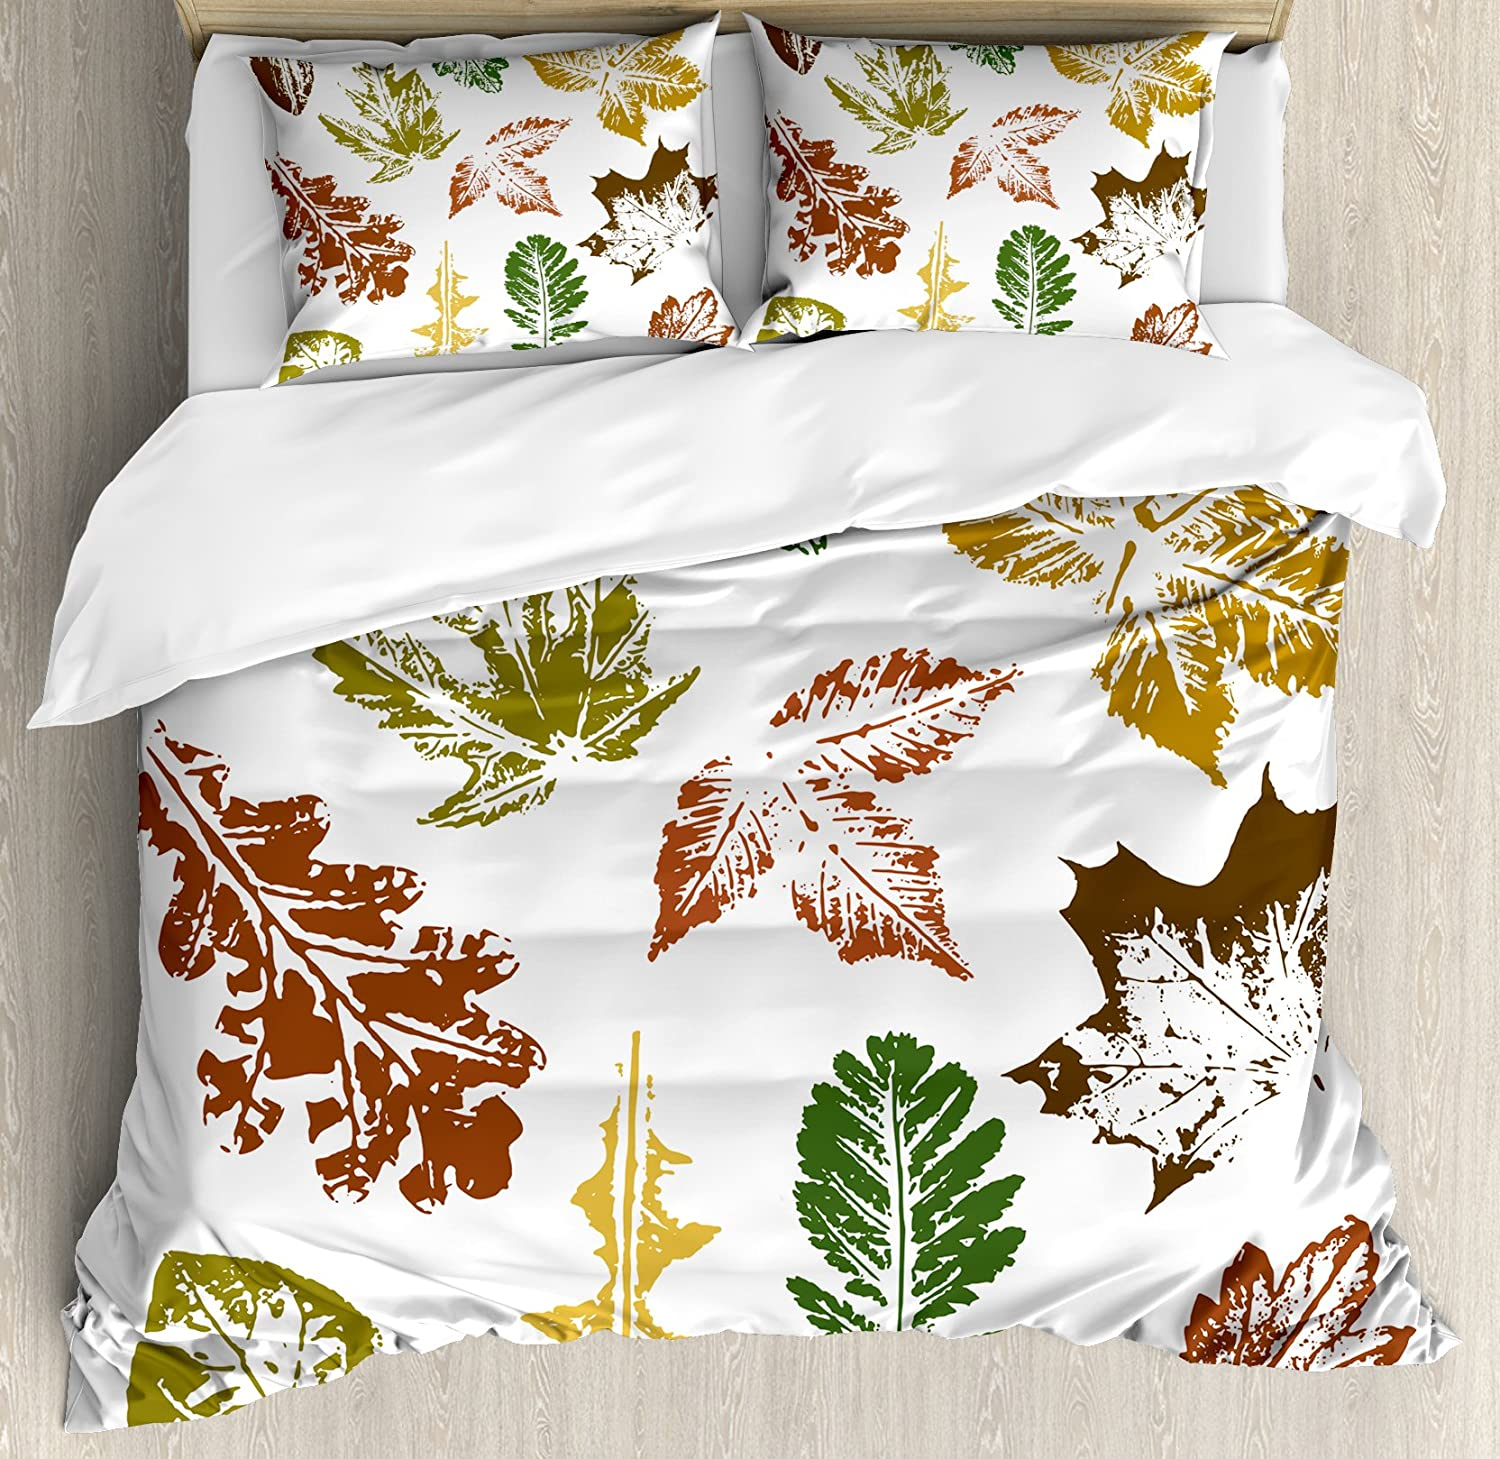 Ambesonne Leaf Duvet Cover Set King Size, Autumn Spring Maple Oak Various Tree Leaves in Grunge Style Art, Decorative 3 Piece Bedding Set with 2 Pillow Shams, Burgundy Brown and Forest Green